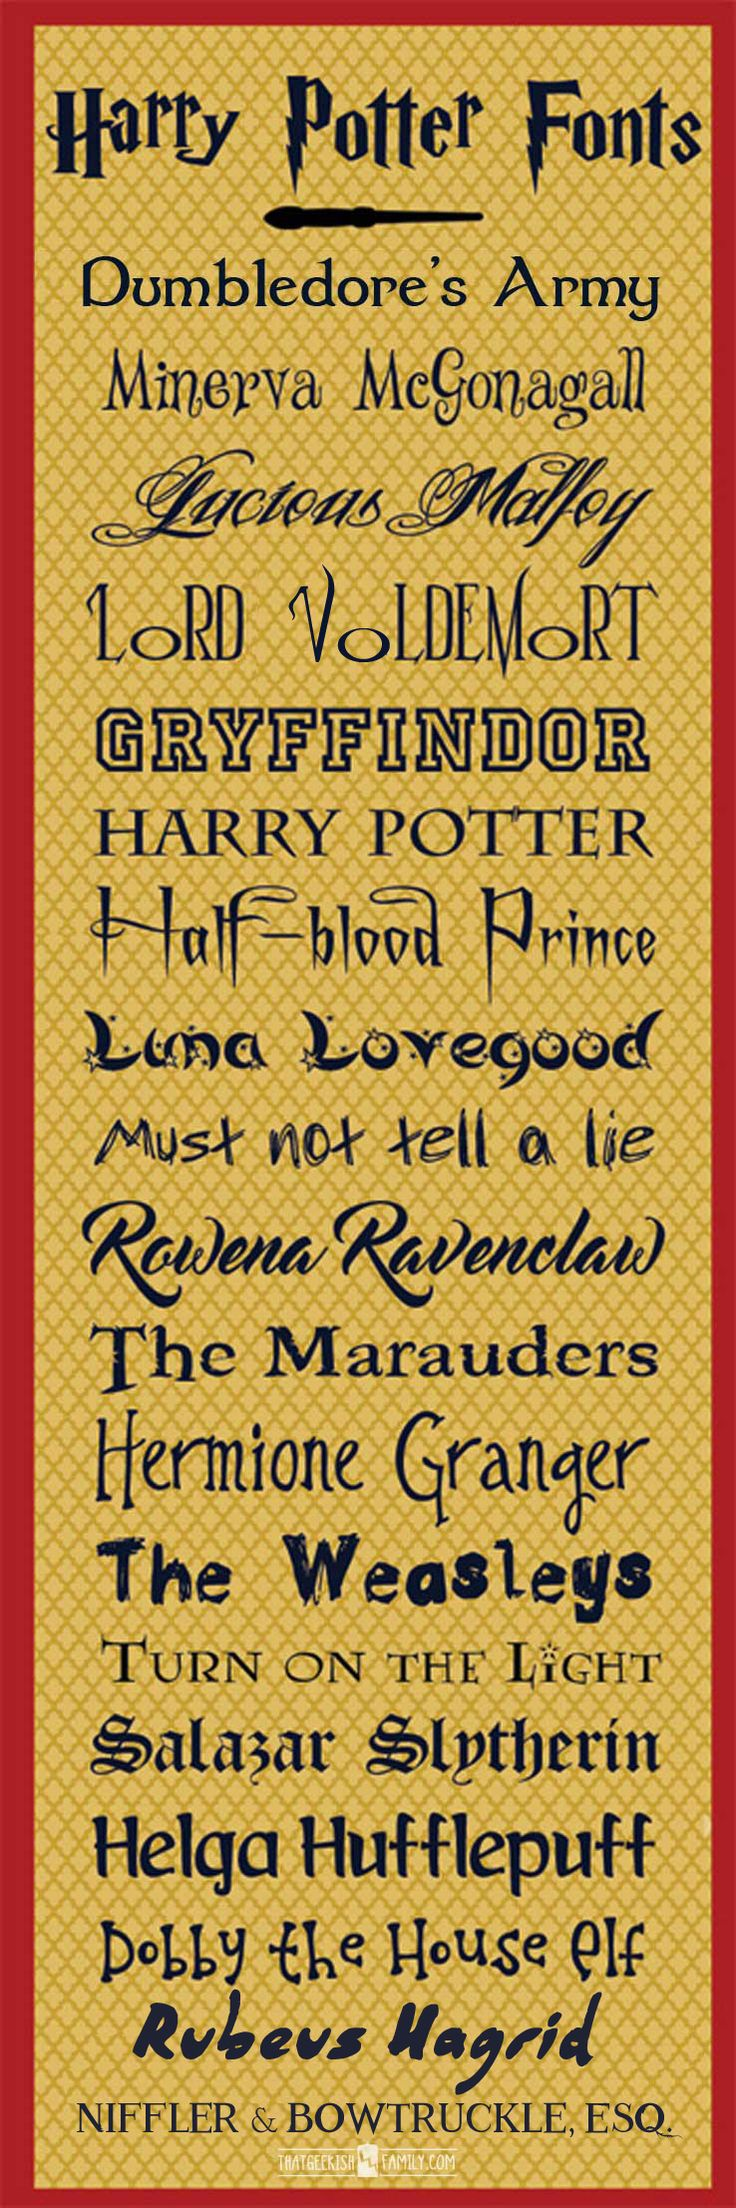 FREE Harry Potter & Fantastic Beasts fonts for crafts, birthday party invitations, scrapbooking, cosplay and more!